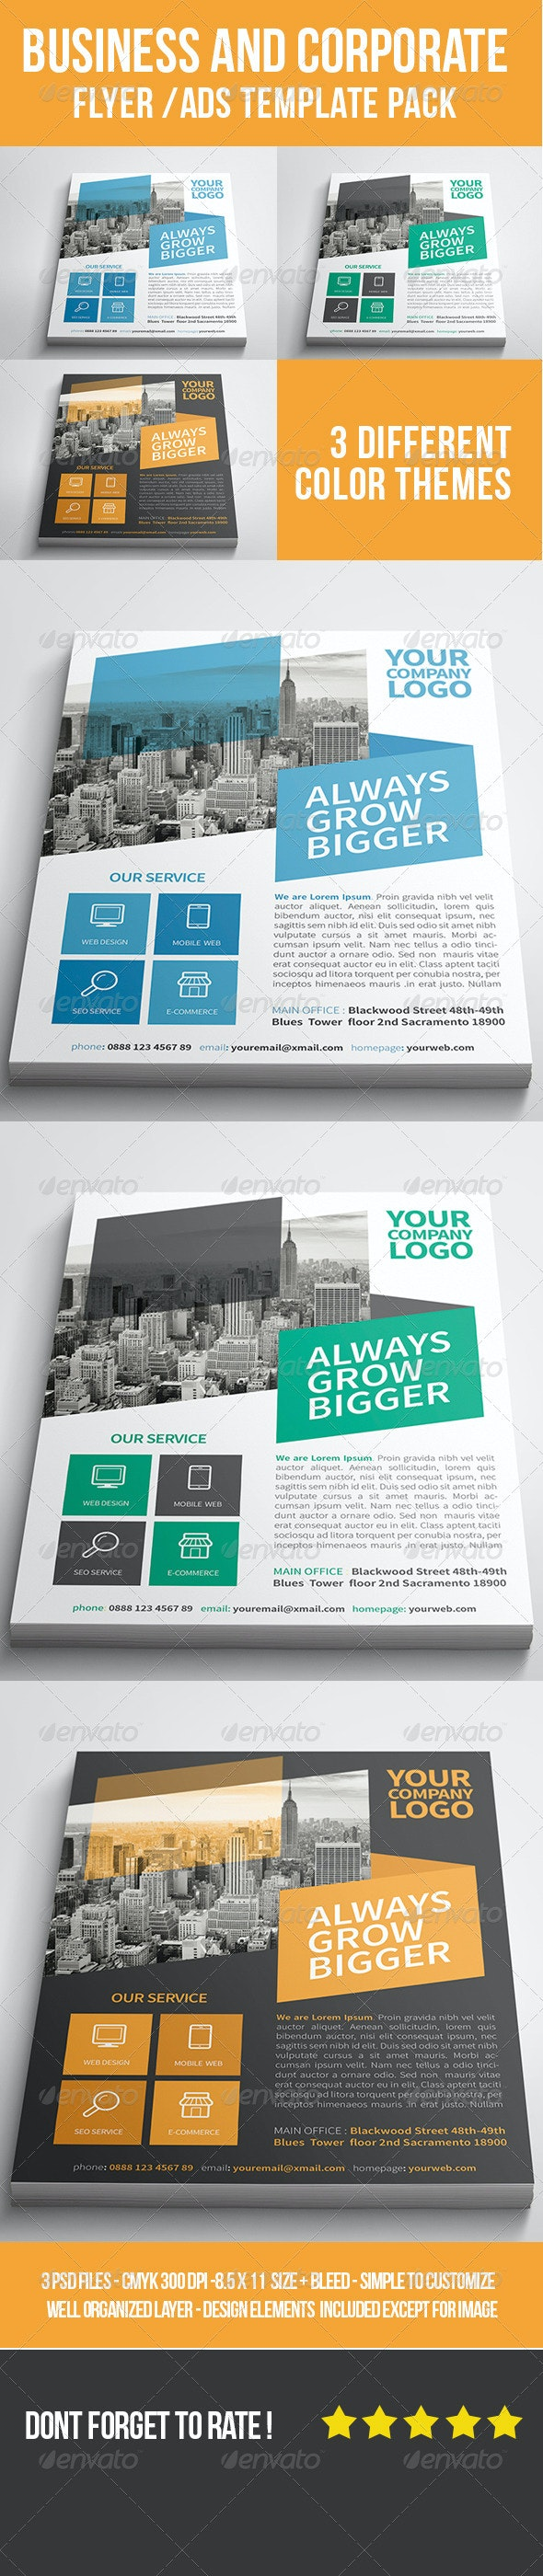 Business and Corporate Flyer/Ads - Corporate Flyers